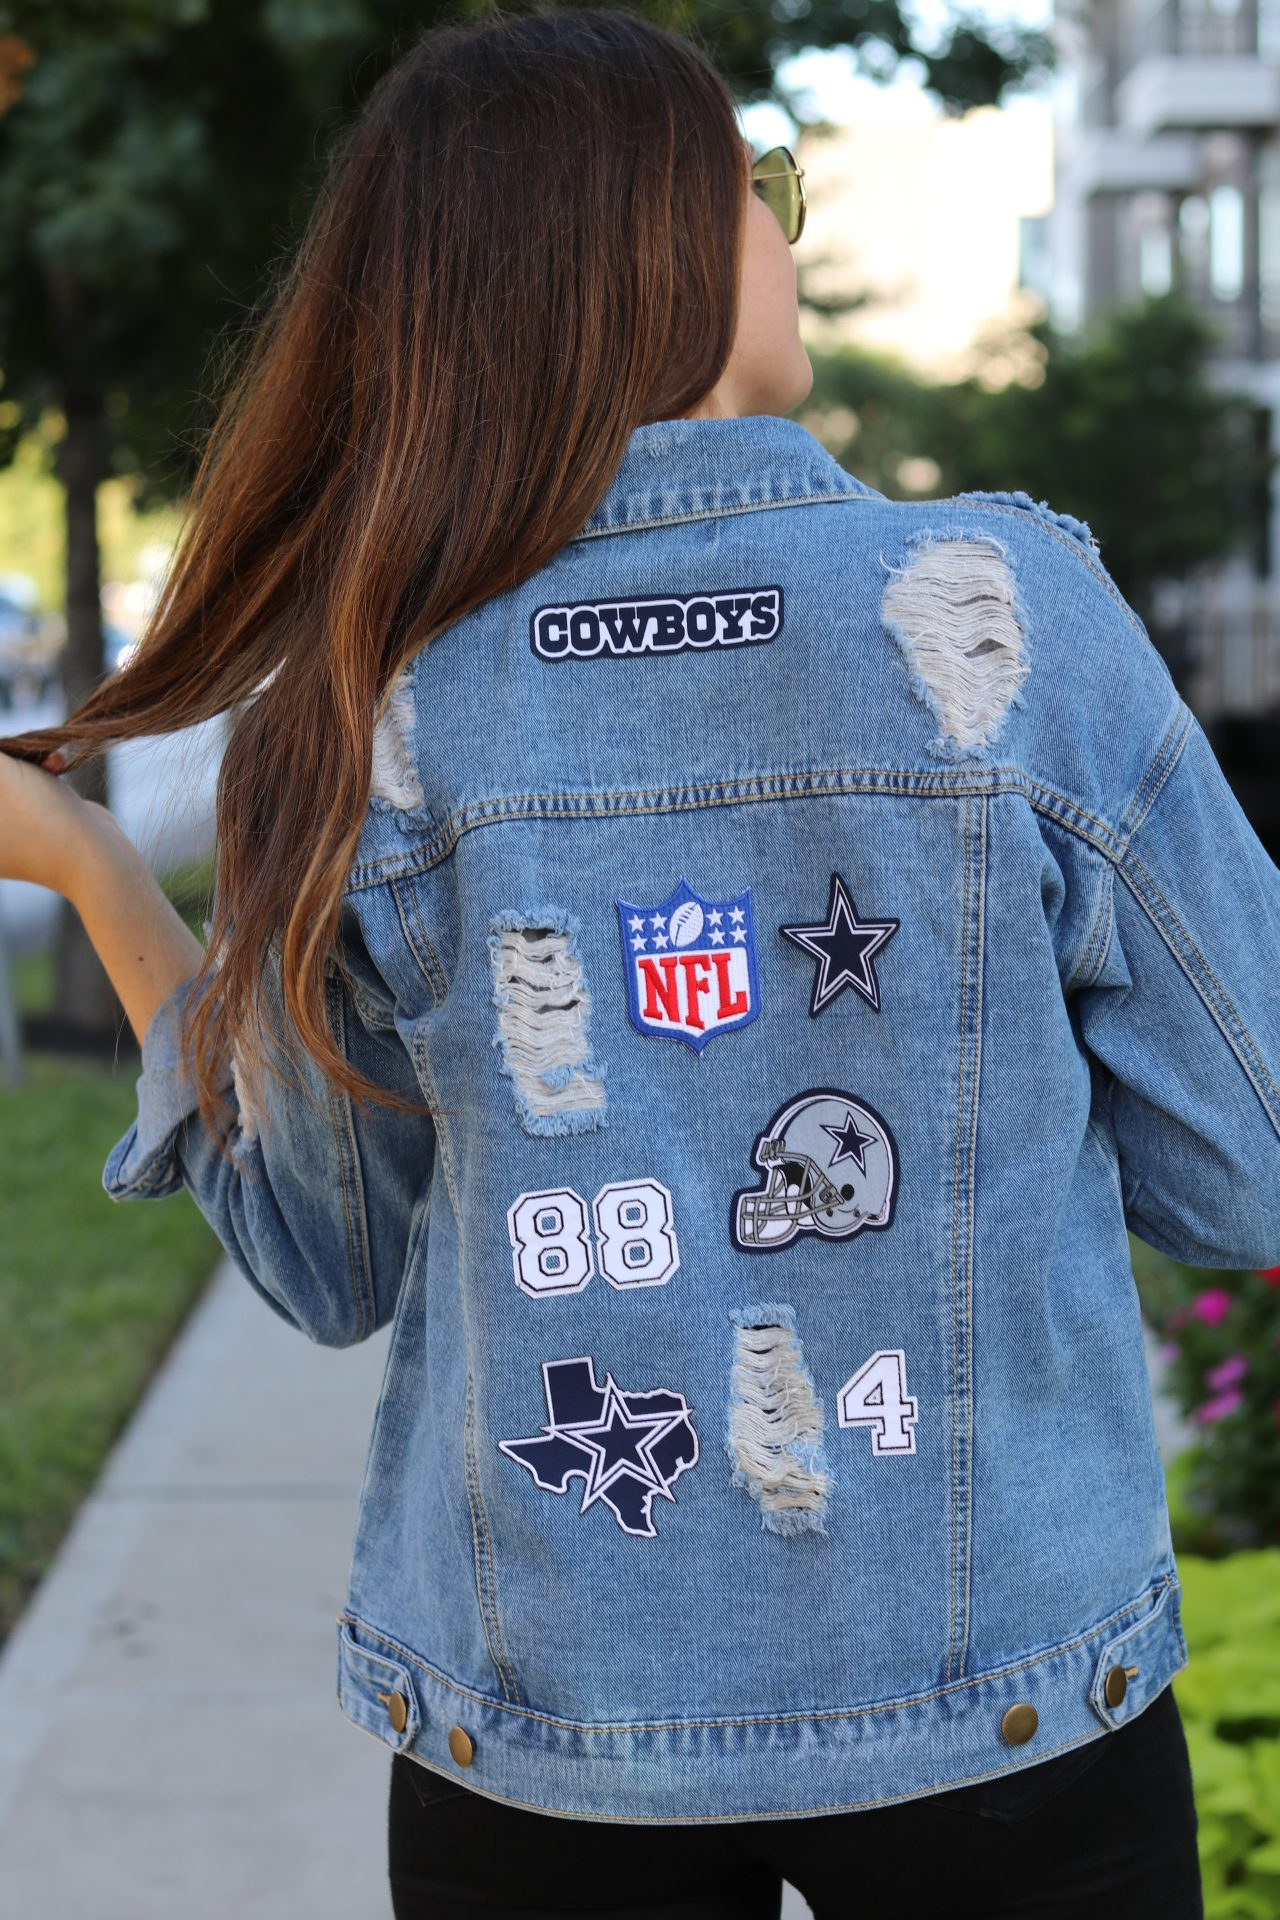 Shirts Dallas Jcpenney Jcpenney Dallas Shirts Anlis Cowboys Cowboys  ErFrxCwnqO 6c78fabf0